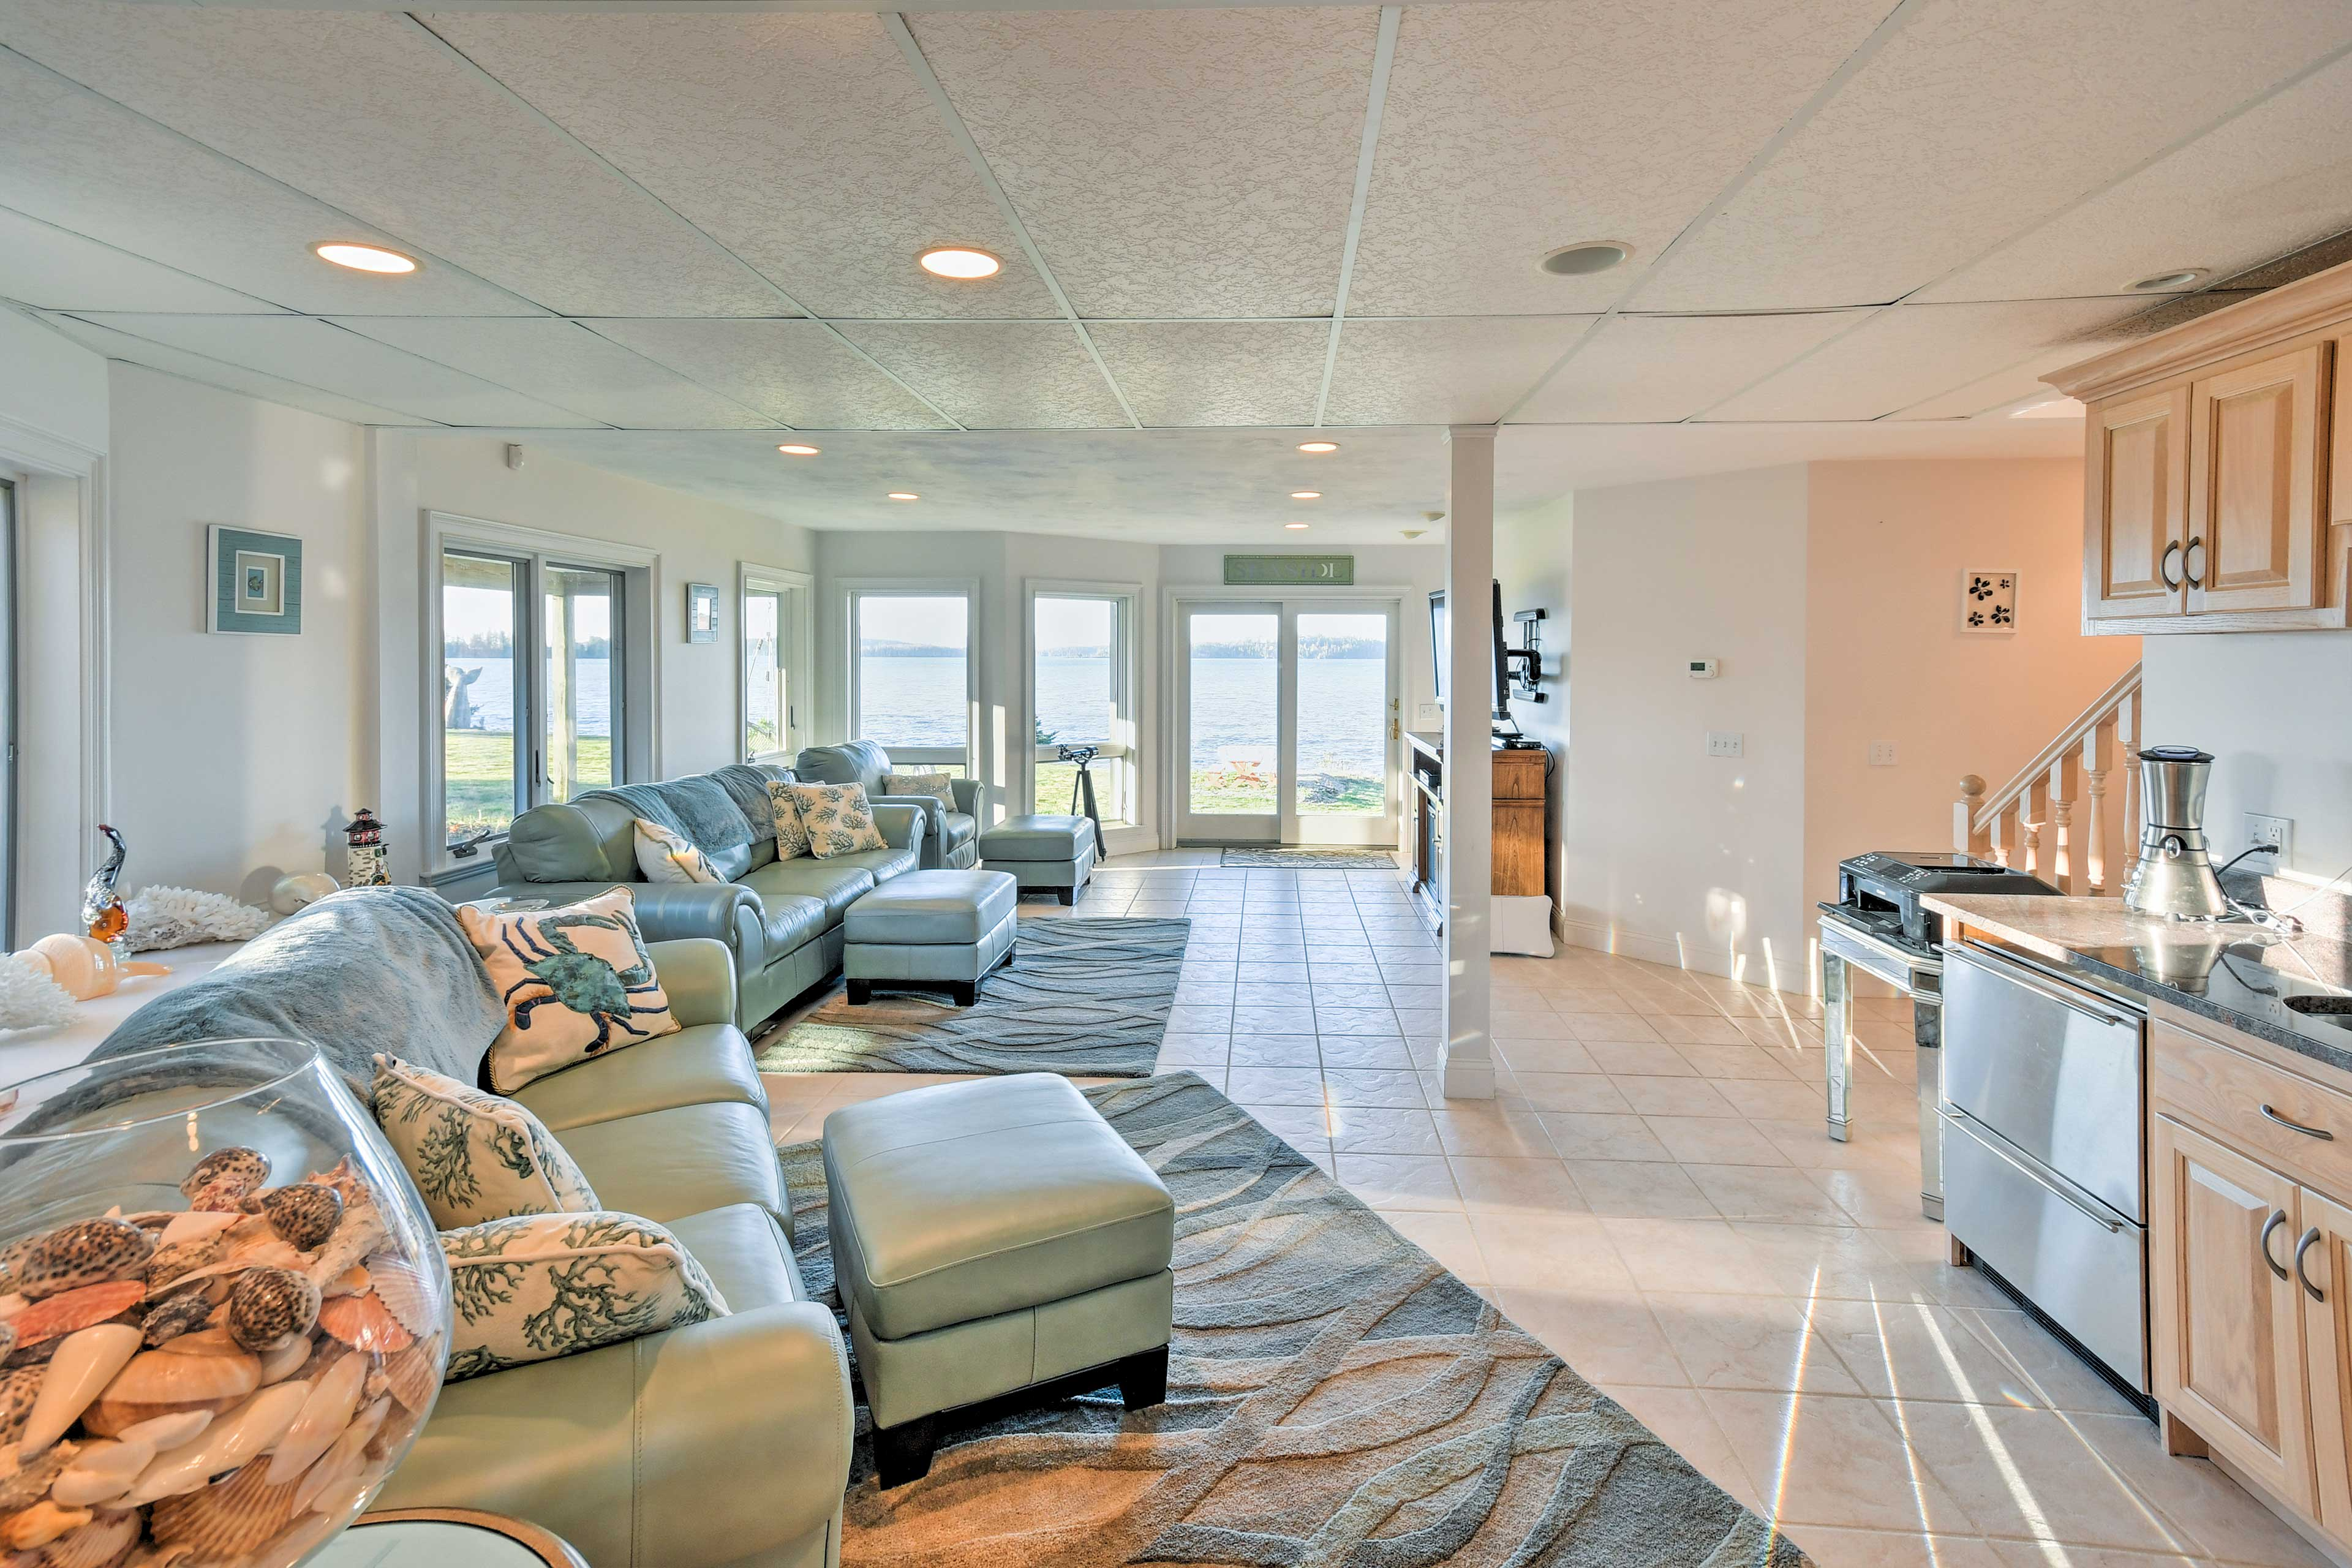 Hang out in the family room, complete with a kitchenette and patio access.